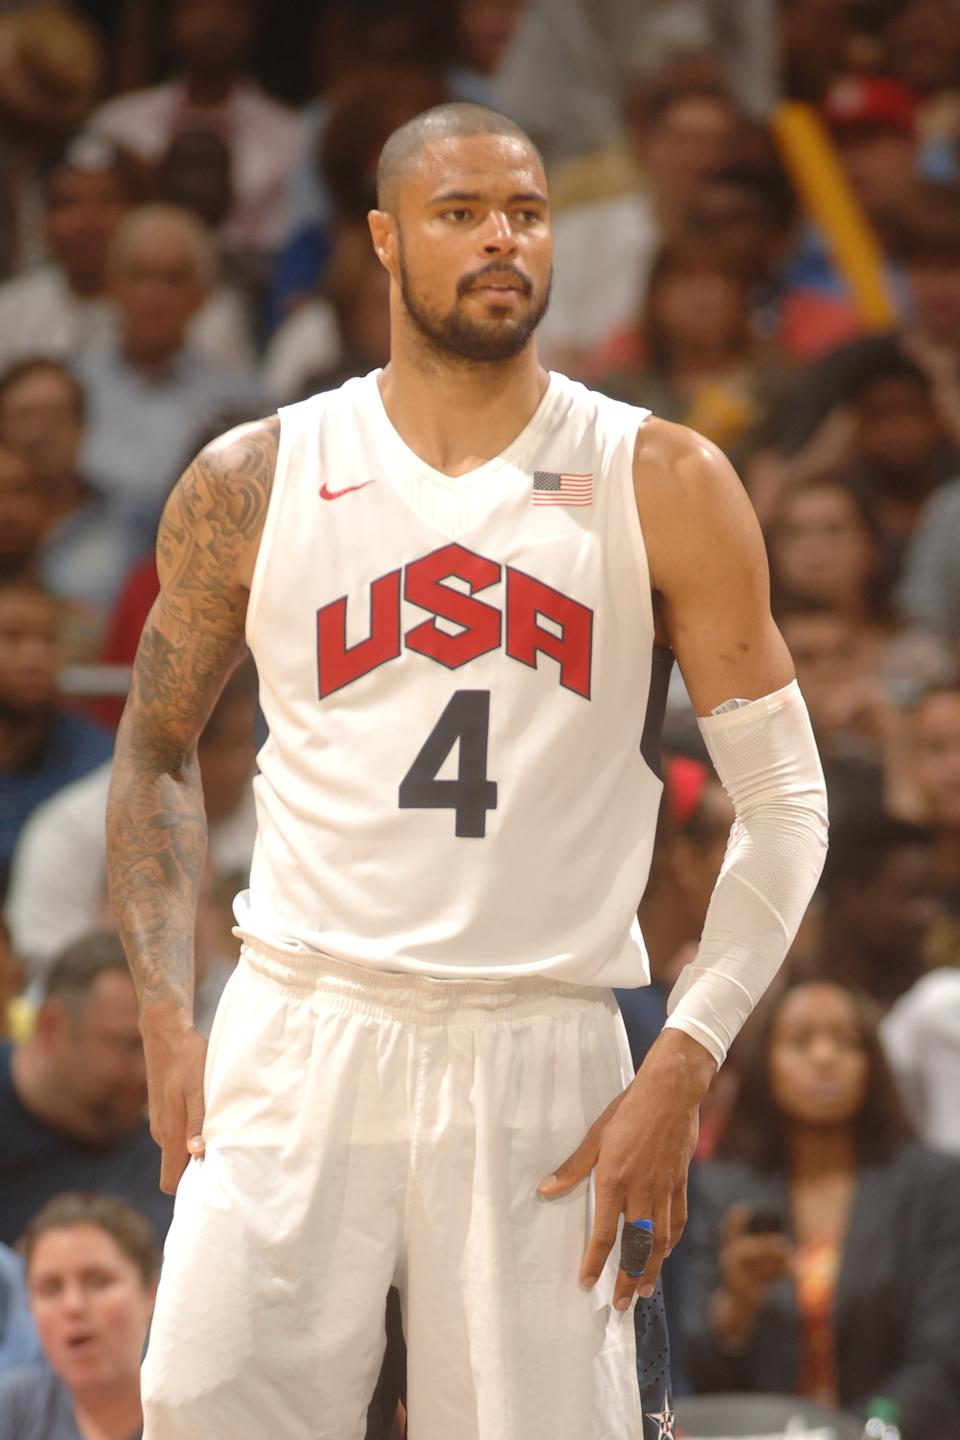 NBA defensive player of the year, Tyson Chandler, has been known to wow crowds with his talent on the basketball court. He also has proved that he knows how to steal the show with his perfectly chiseled body and unique sleeve of tattoos. (Photo by Mitchell Layton/Getty Images)